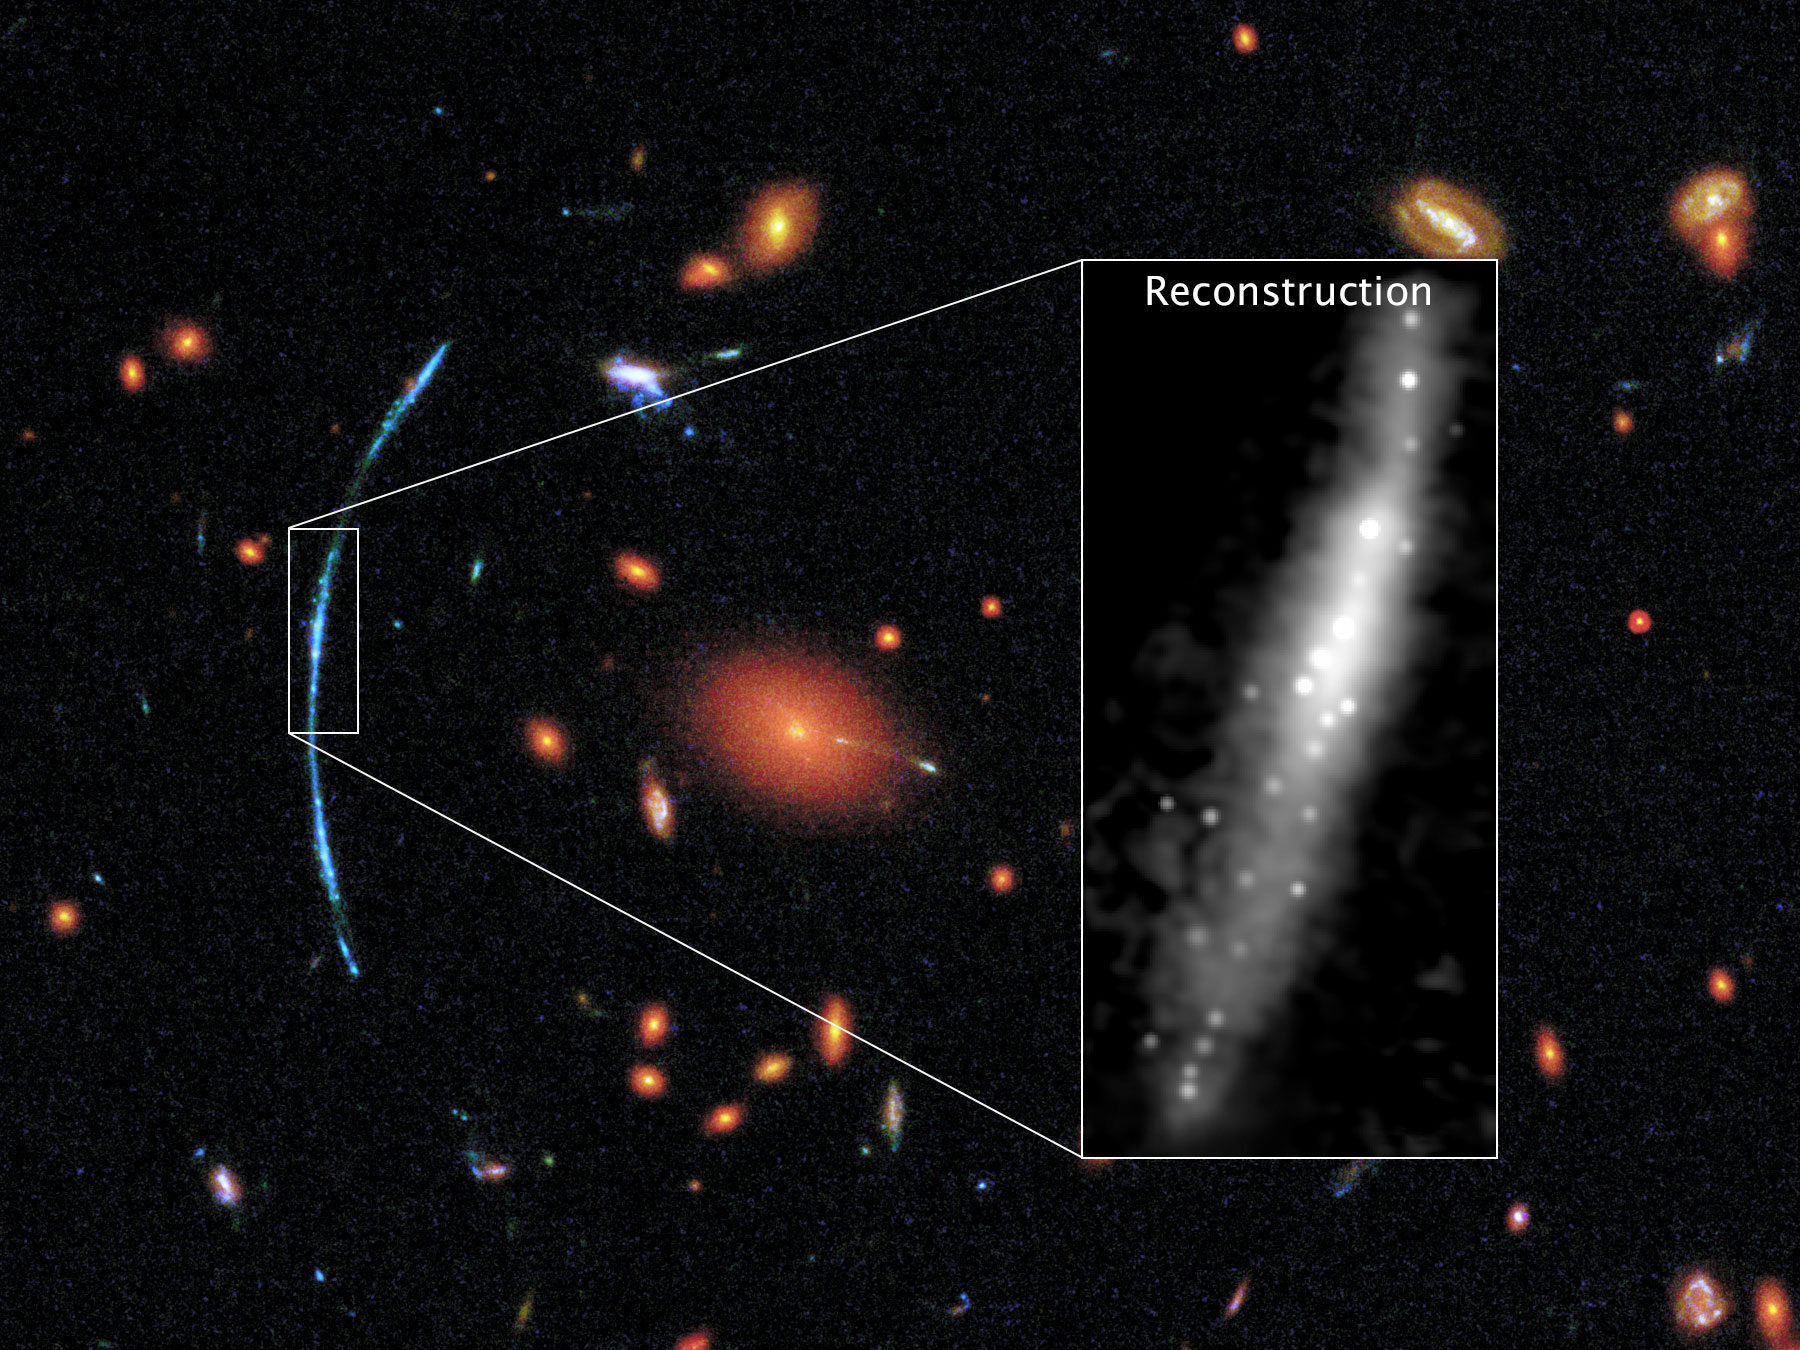 hubble telescope spots clumps of new stars in distant galaxy